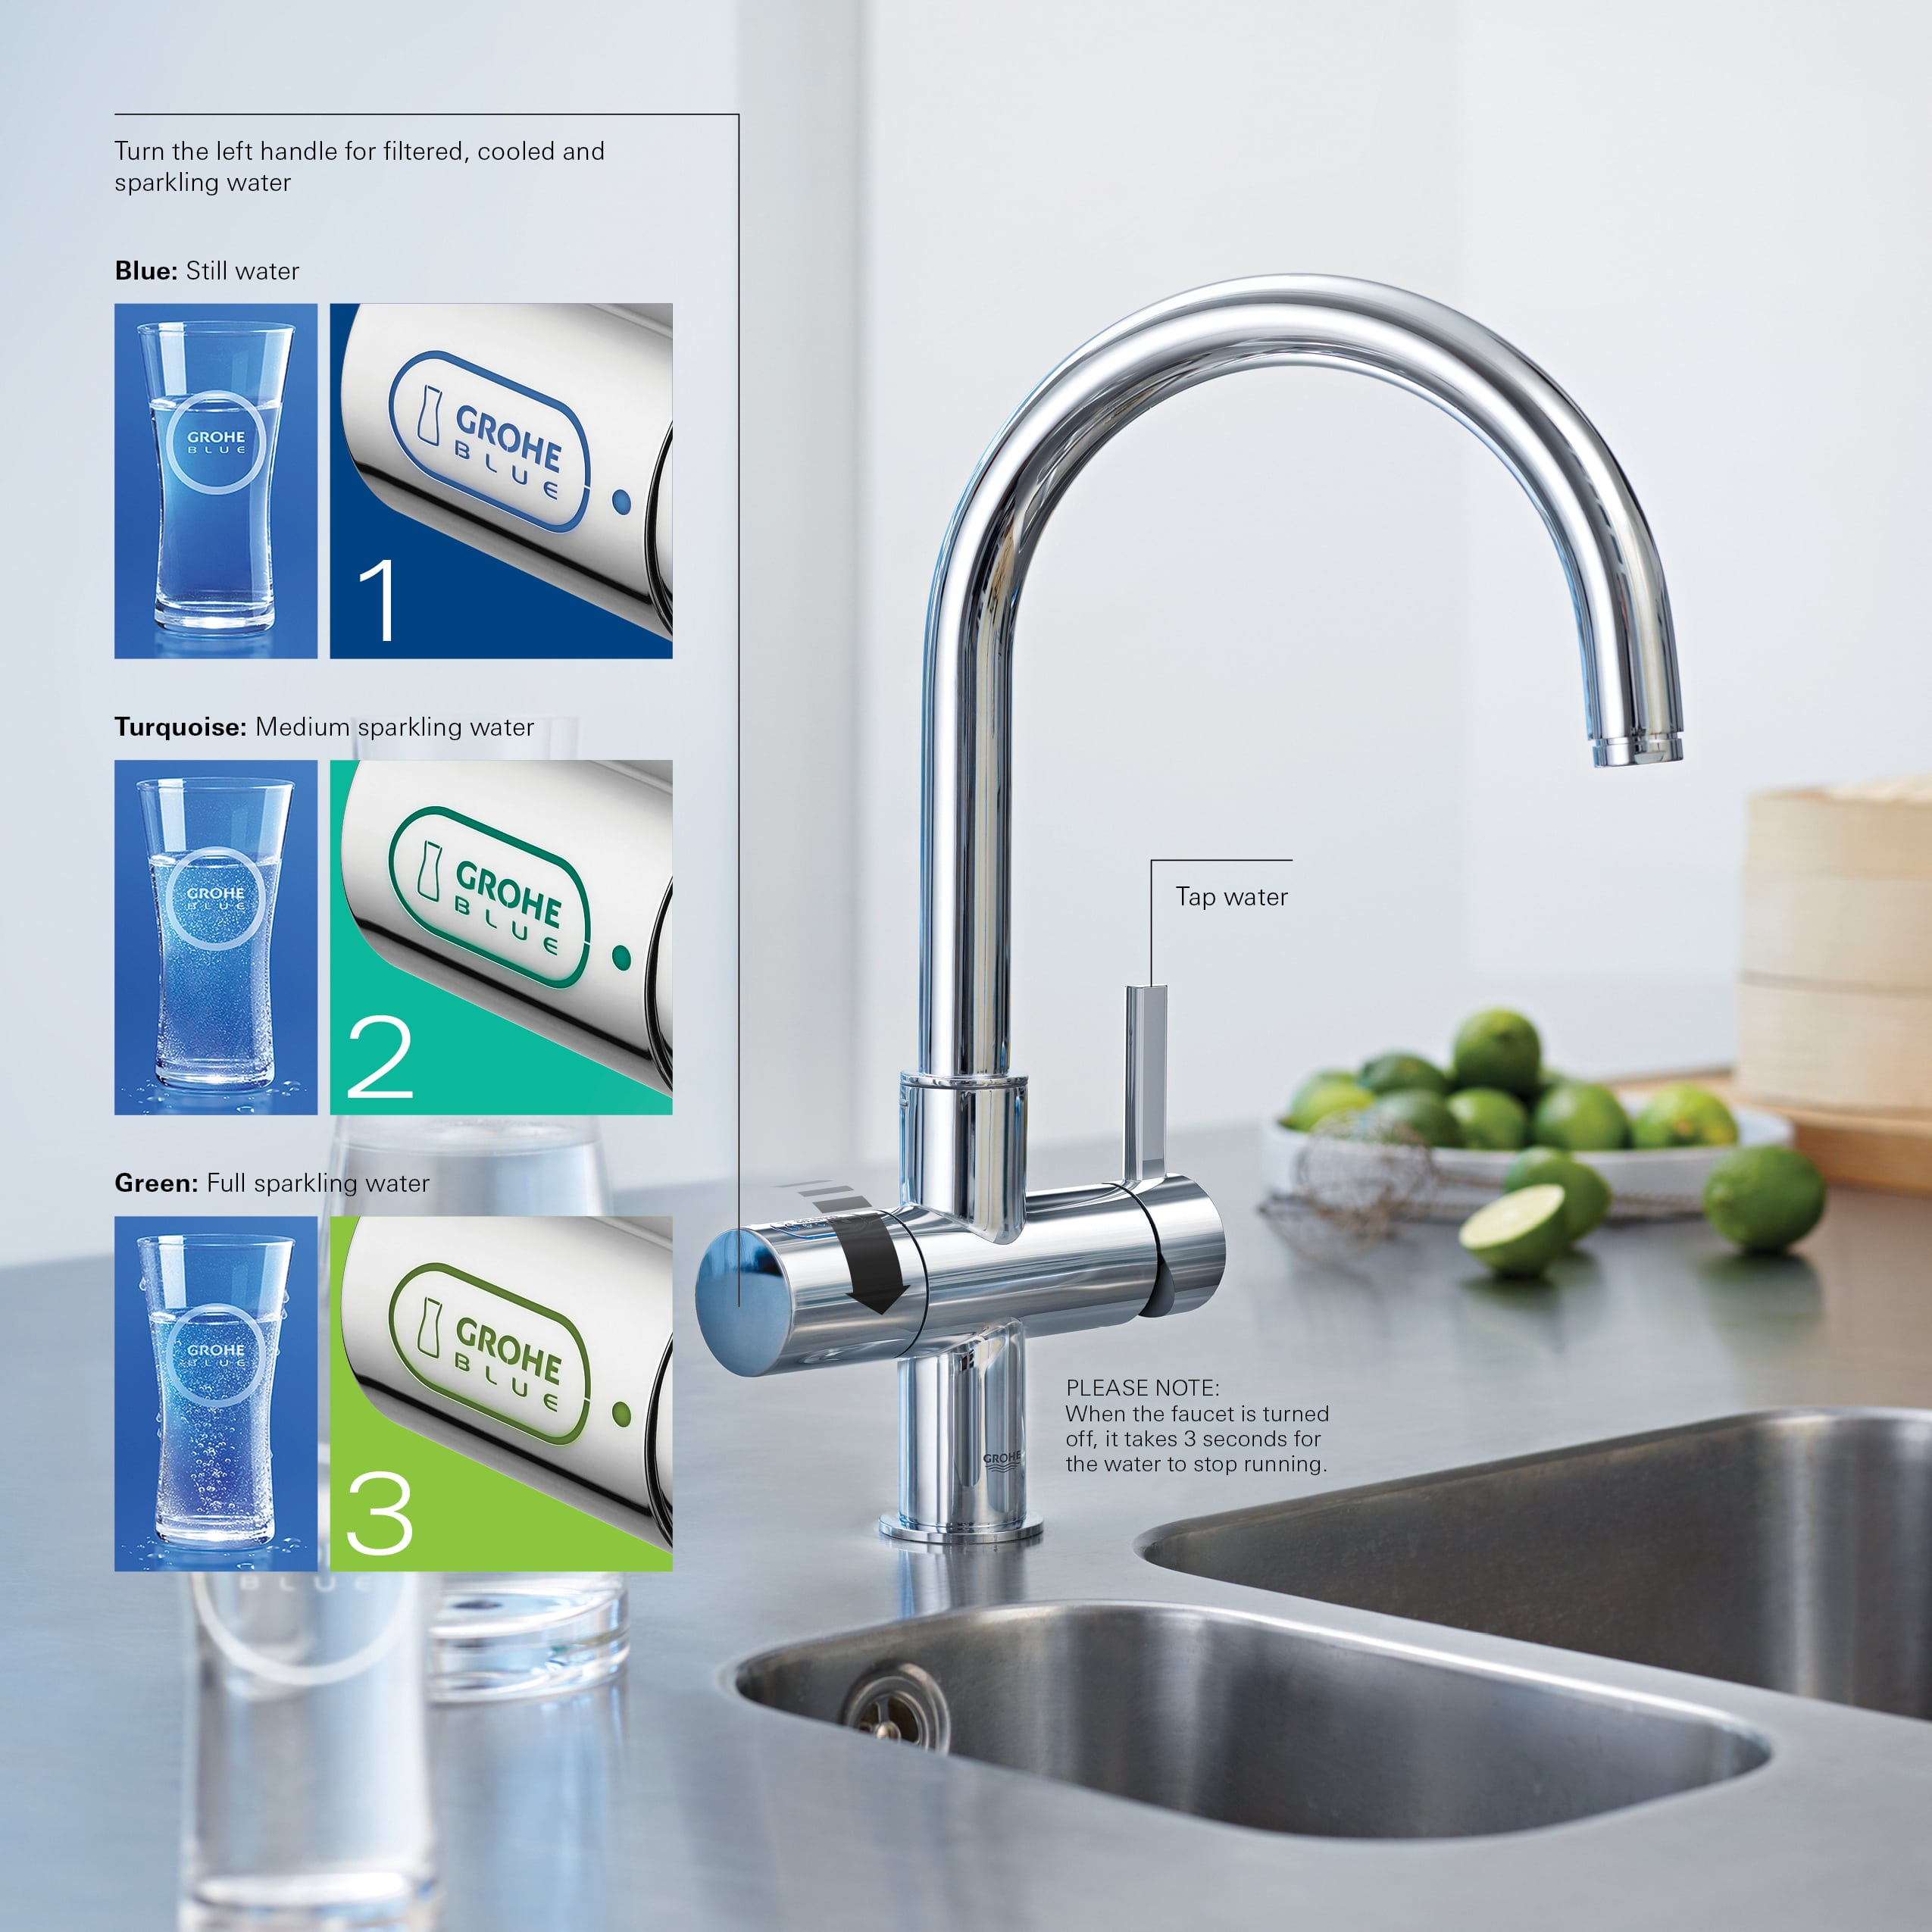 Grohe 31251000 Starlight Chrome Grohe Blue Chilled & Sparkling ...